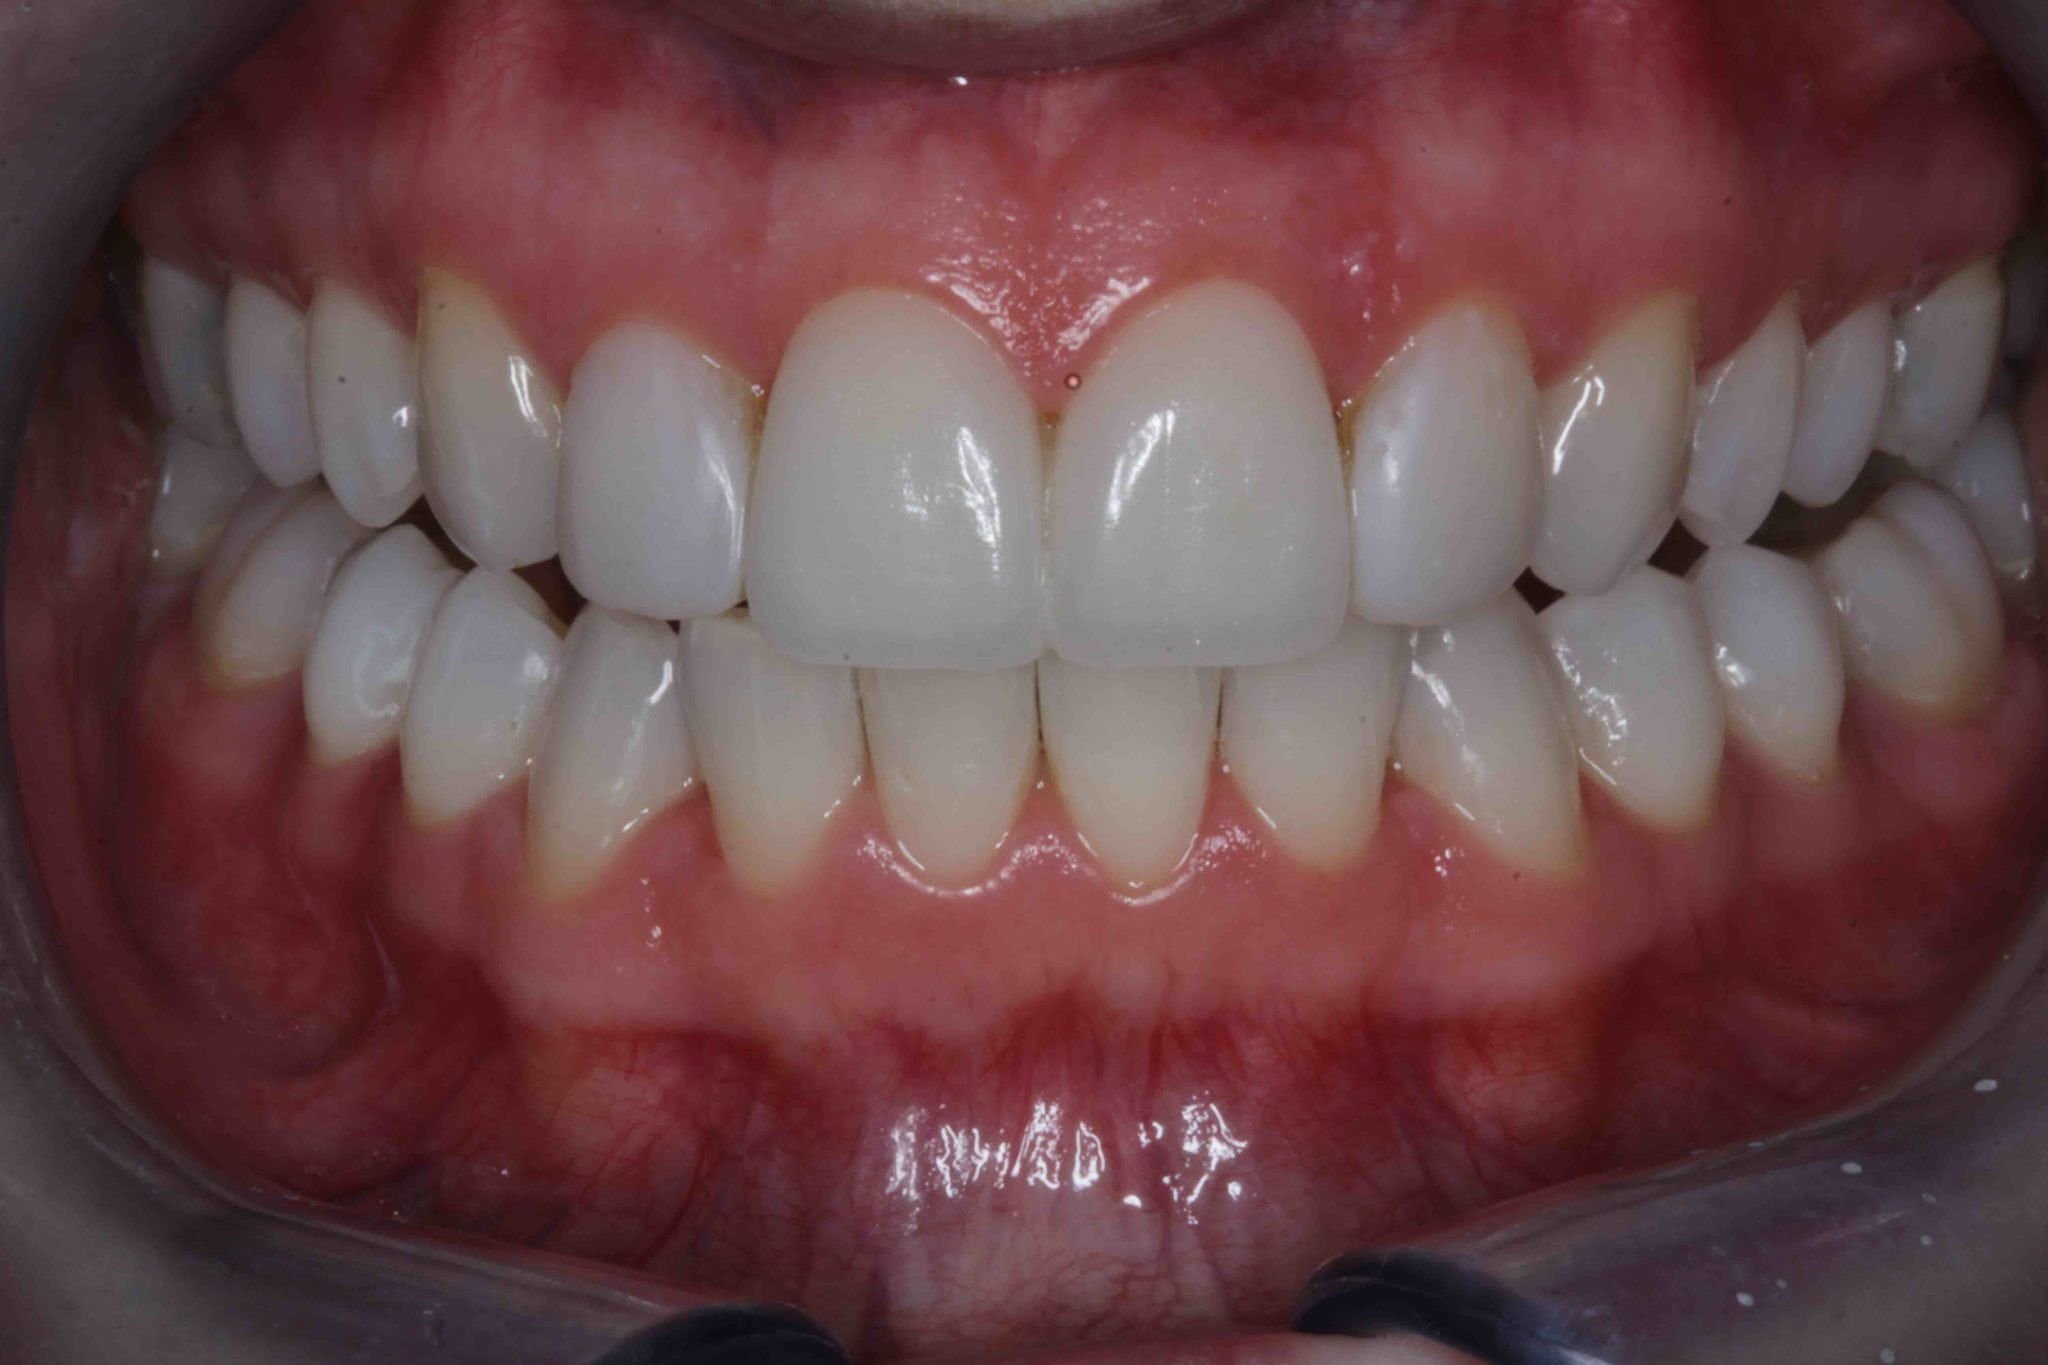 Porcelain veneers Smile Makeover after photos